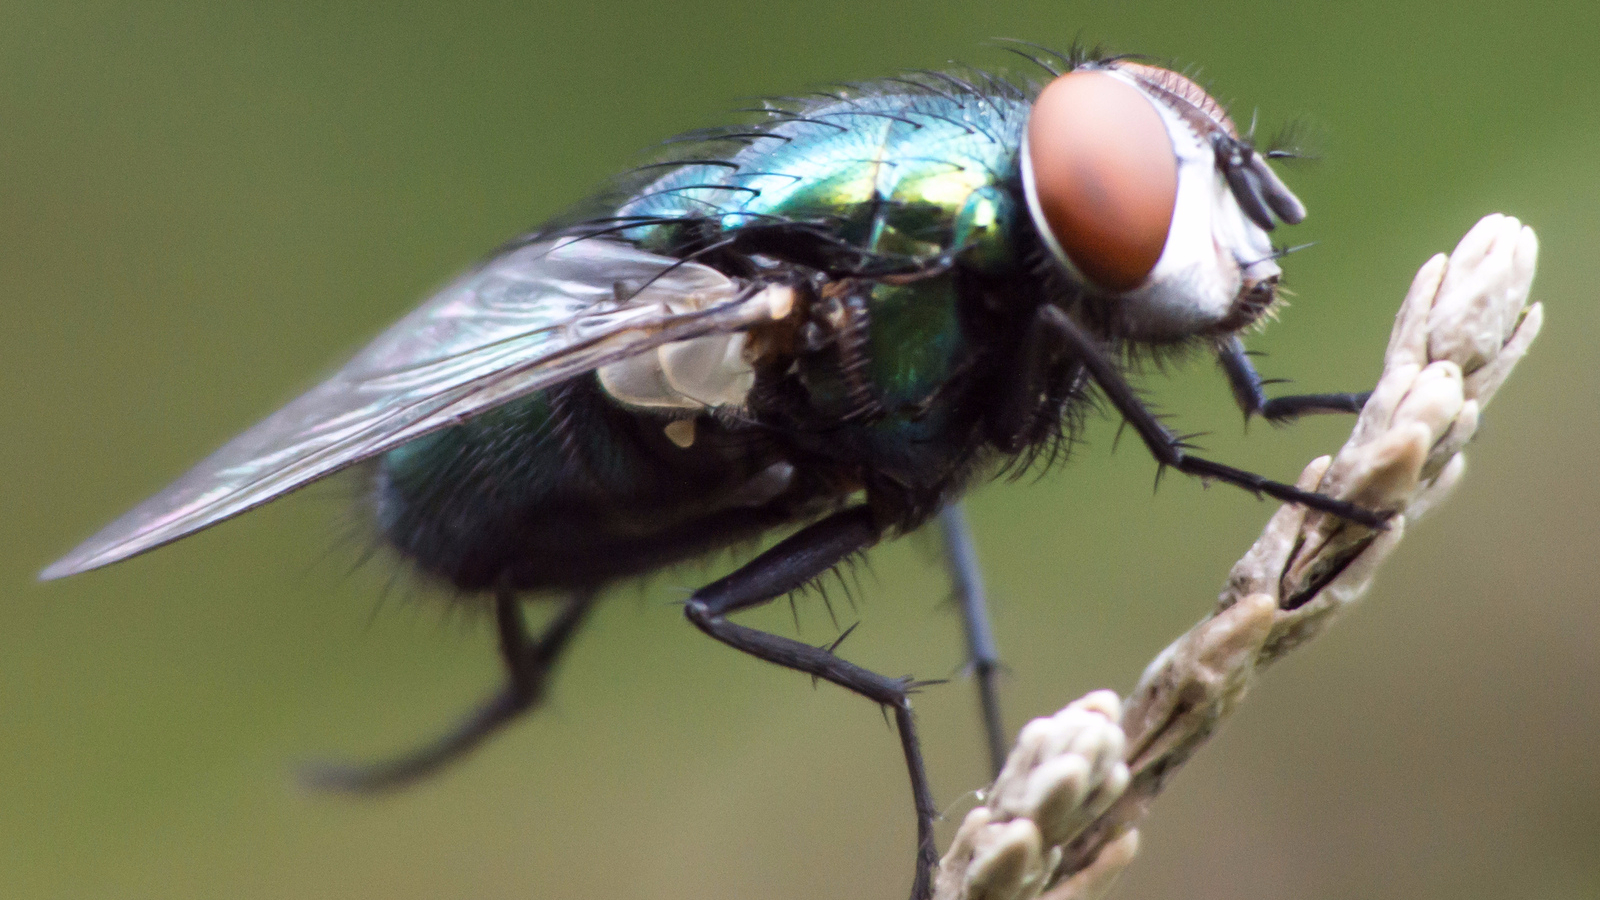 The common housefly makes up just one of 150 families of flies.